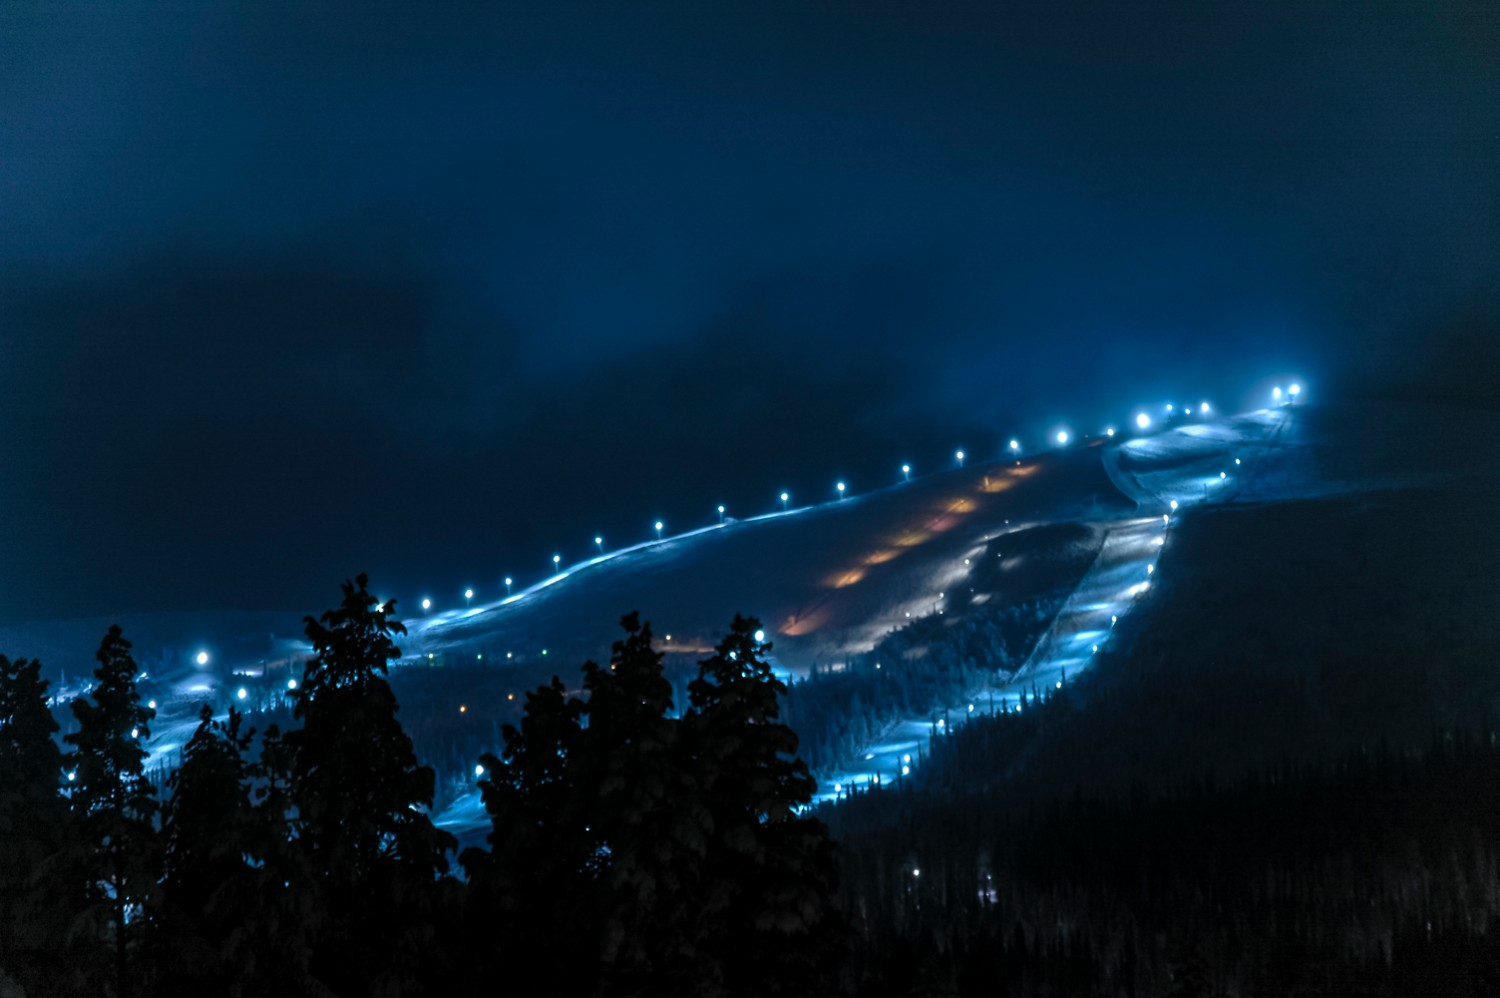 ski slopes at night under the lights